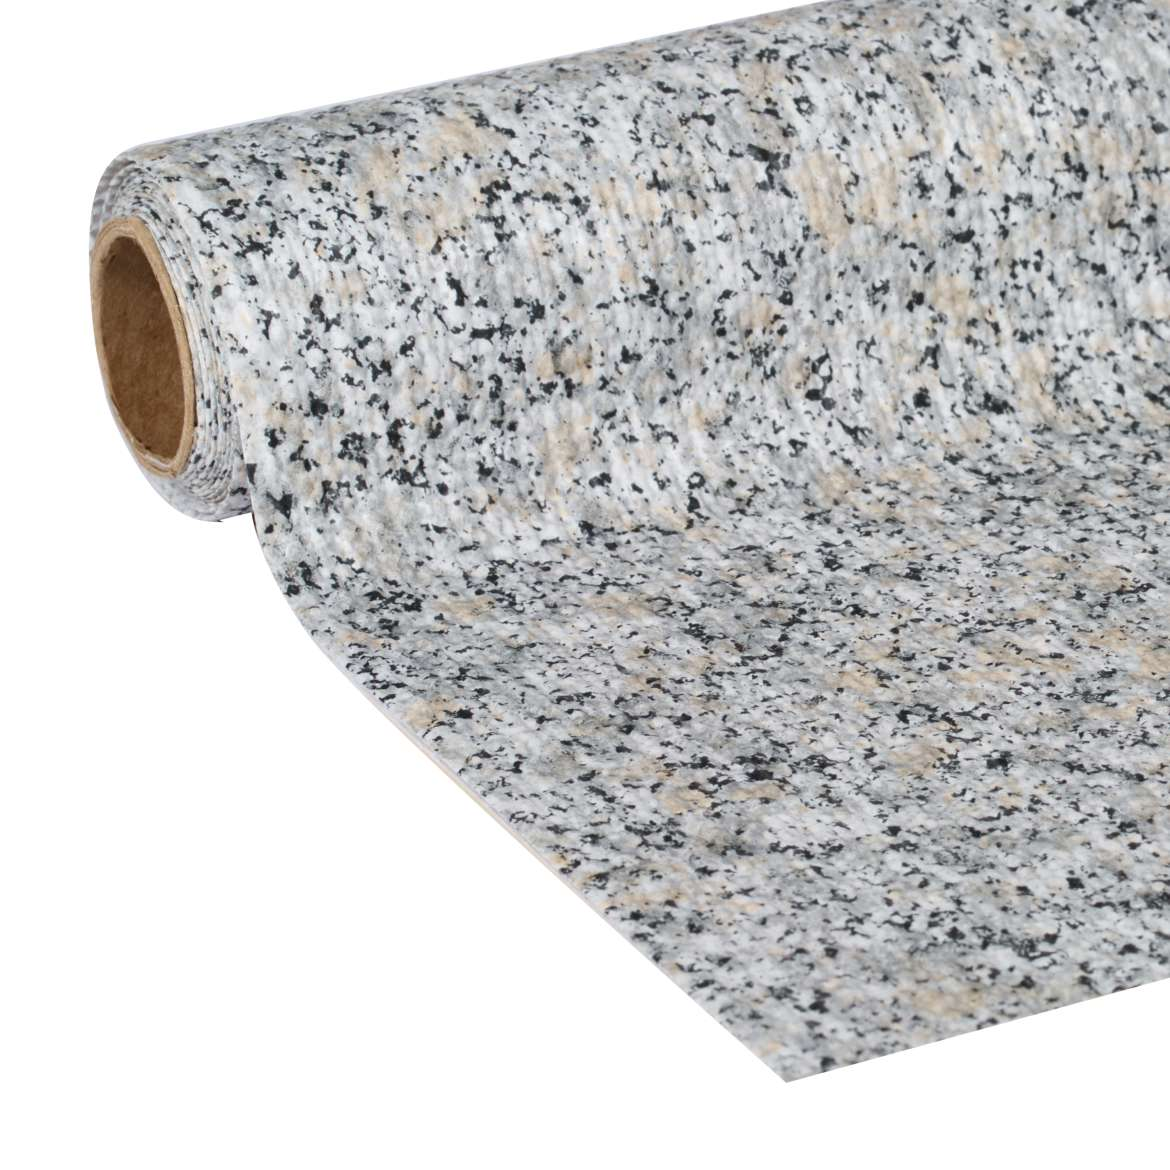 Duck Brand Smooth Top Easy Liner Brand Shelf Liner - Grey Granite, 20 in. x 6 ft.